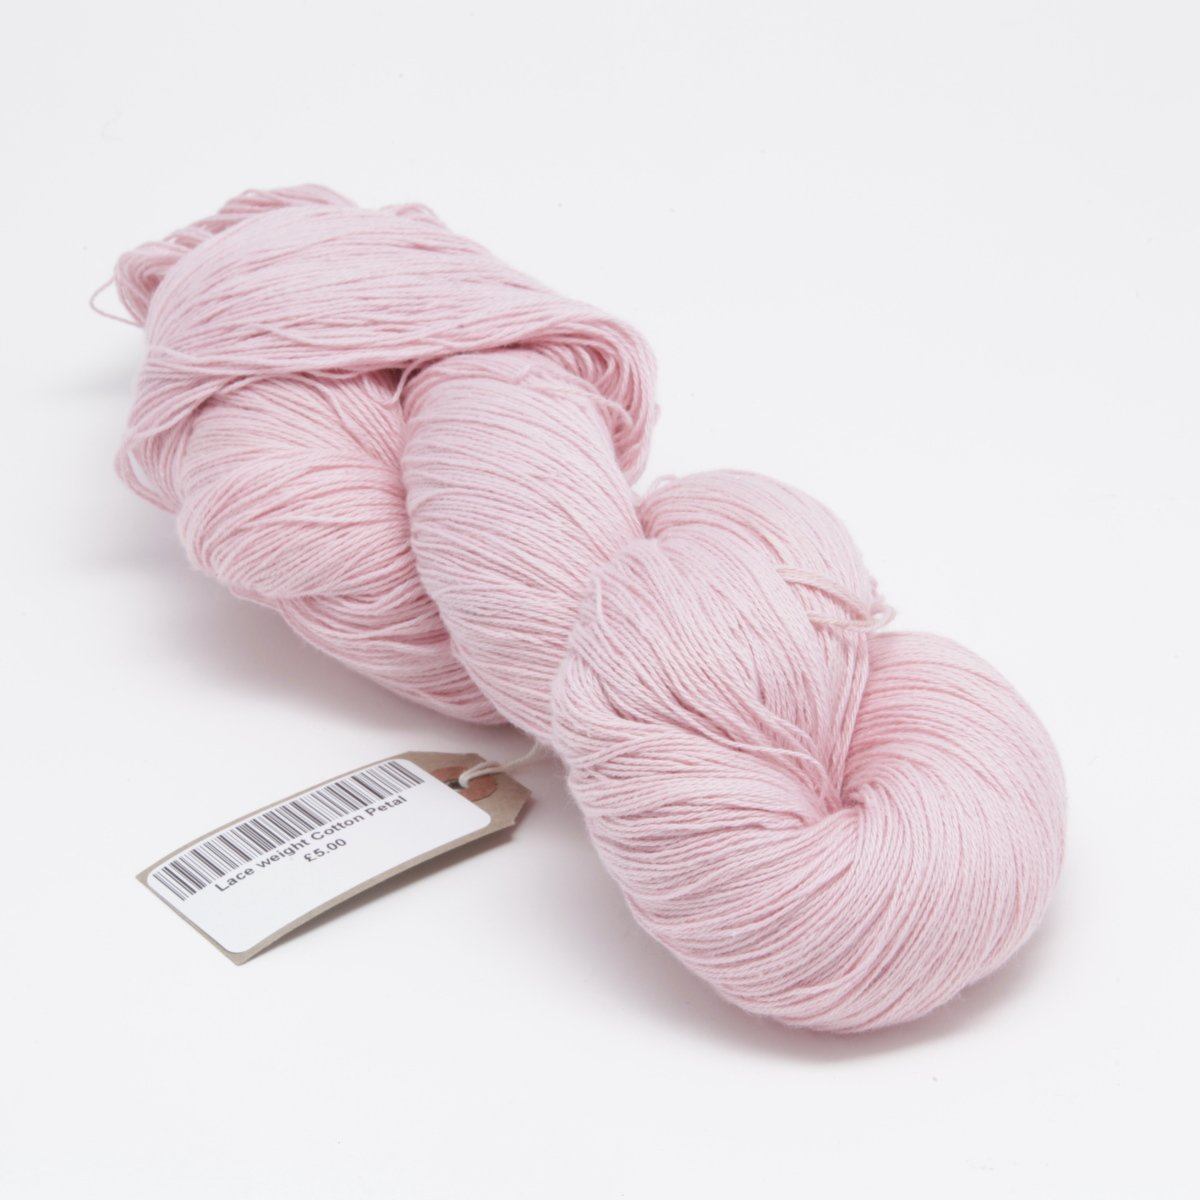 Cotton Lace Knitting Yarn